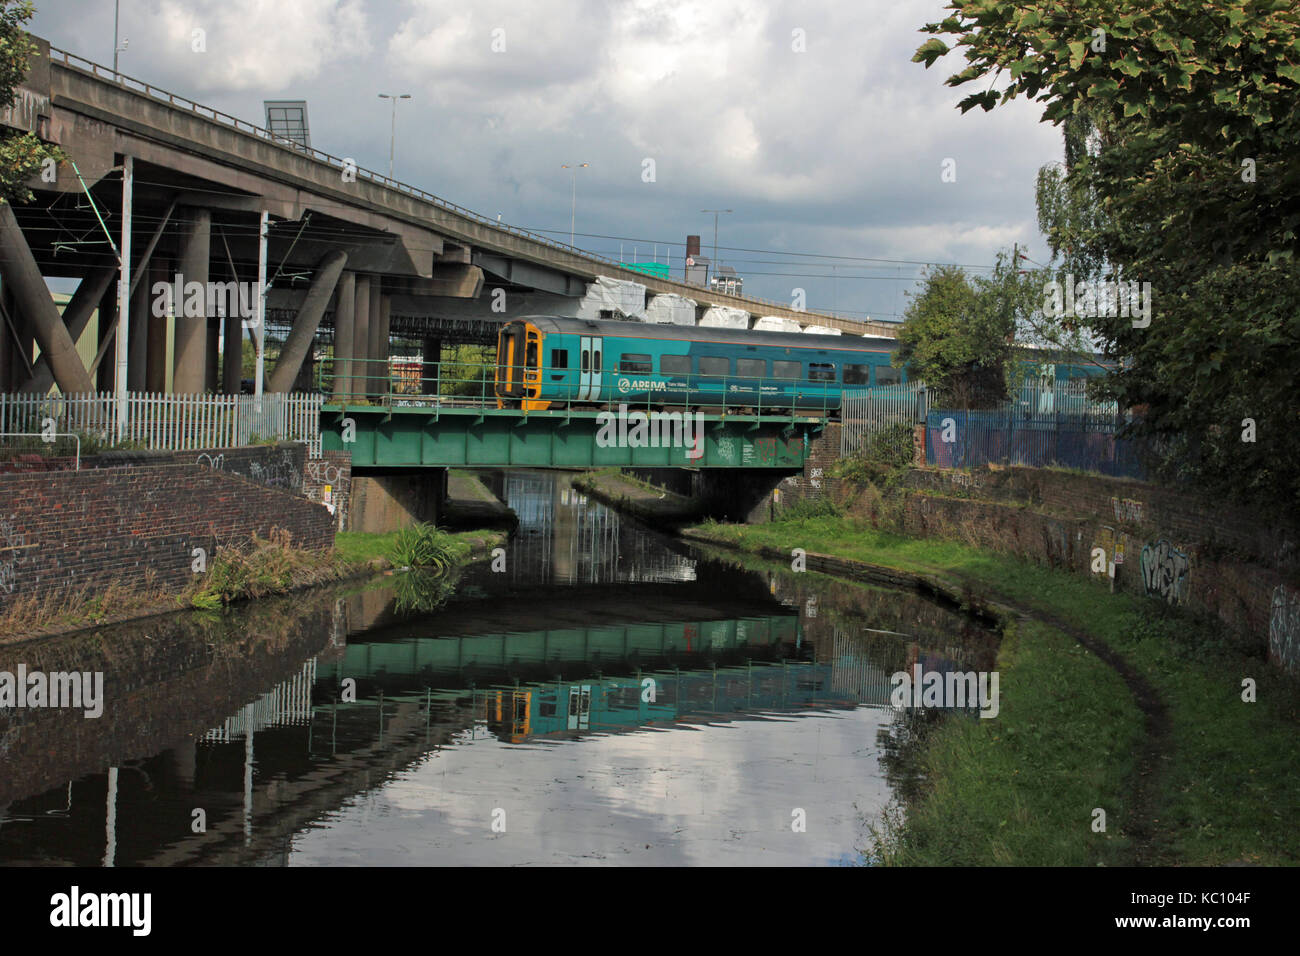 A Arriva Wales diesel multiple unit passenger train crosses a canal deep in the heart of the Black Country near - Stock Image